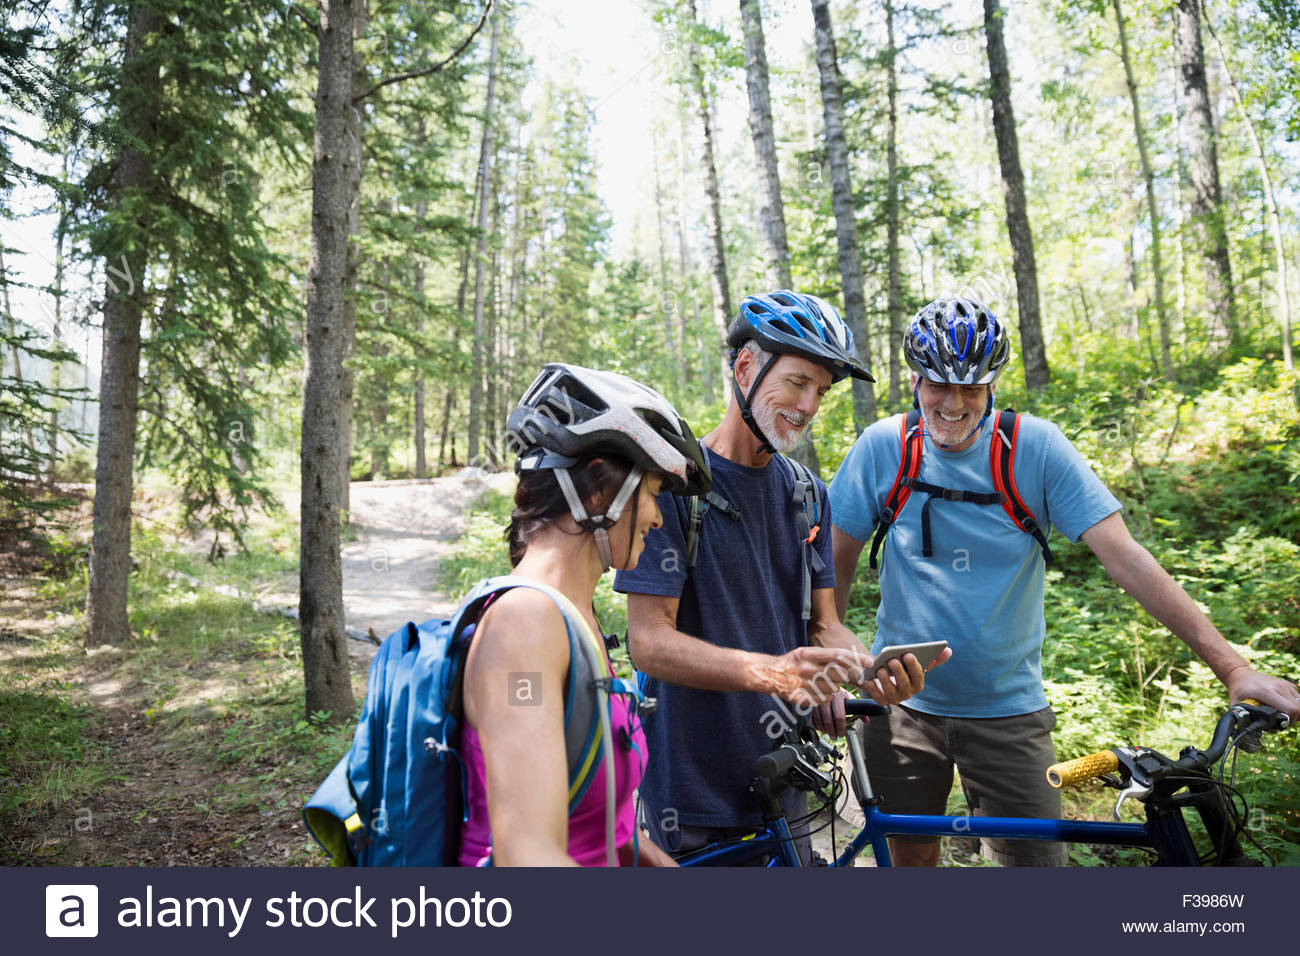 Friends mountain bike checking cell phone in woods - Stock Image